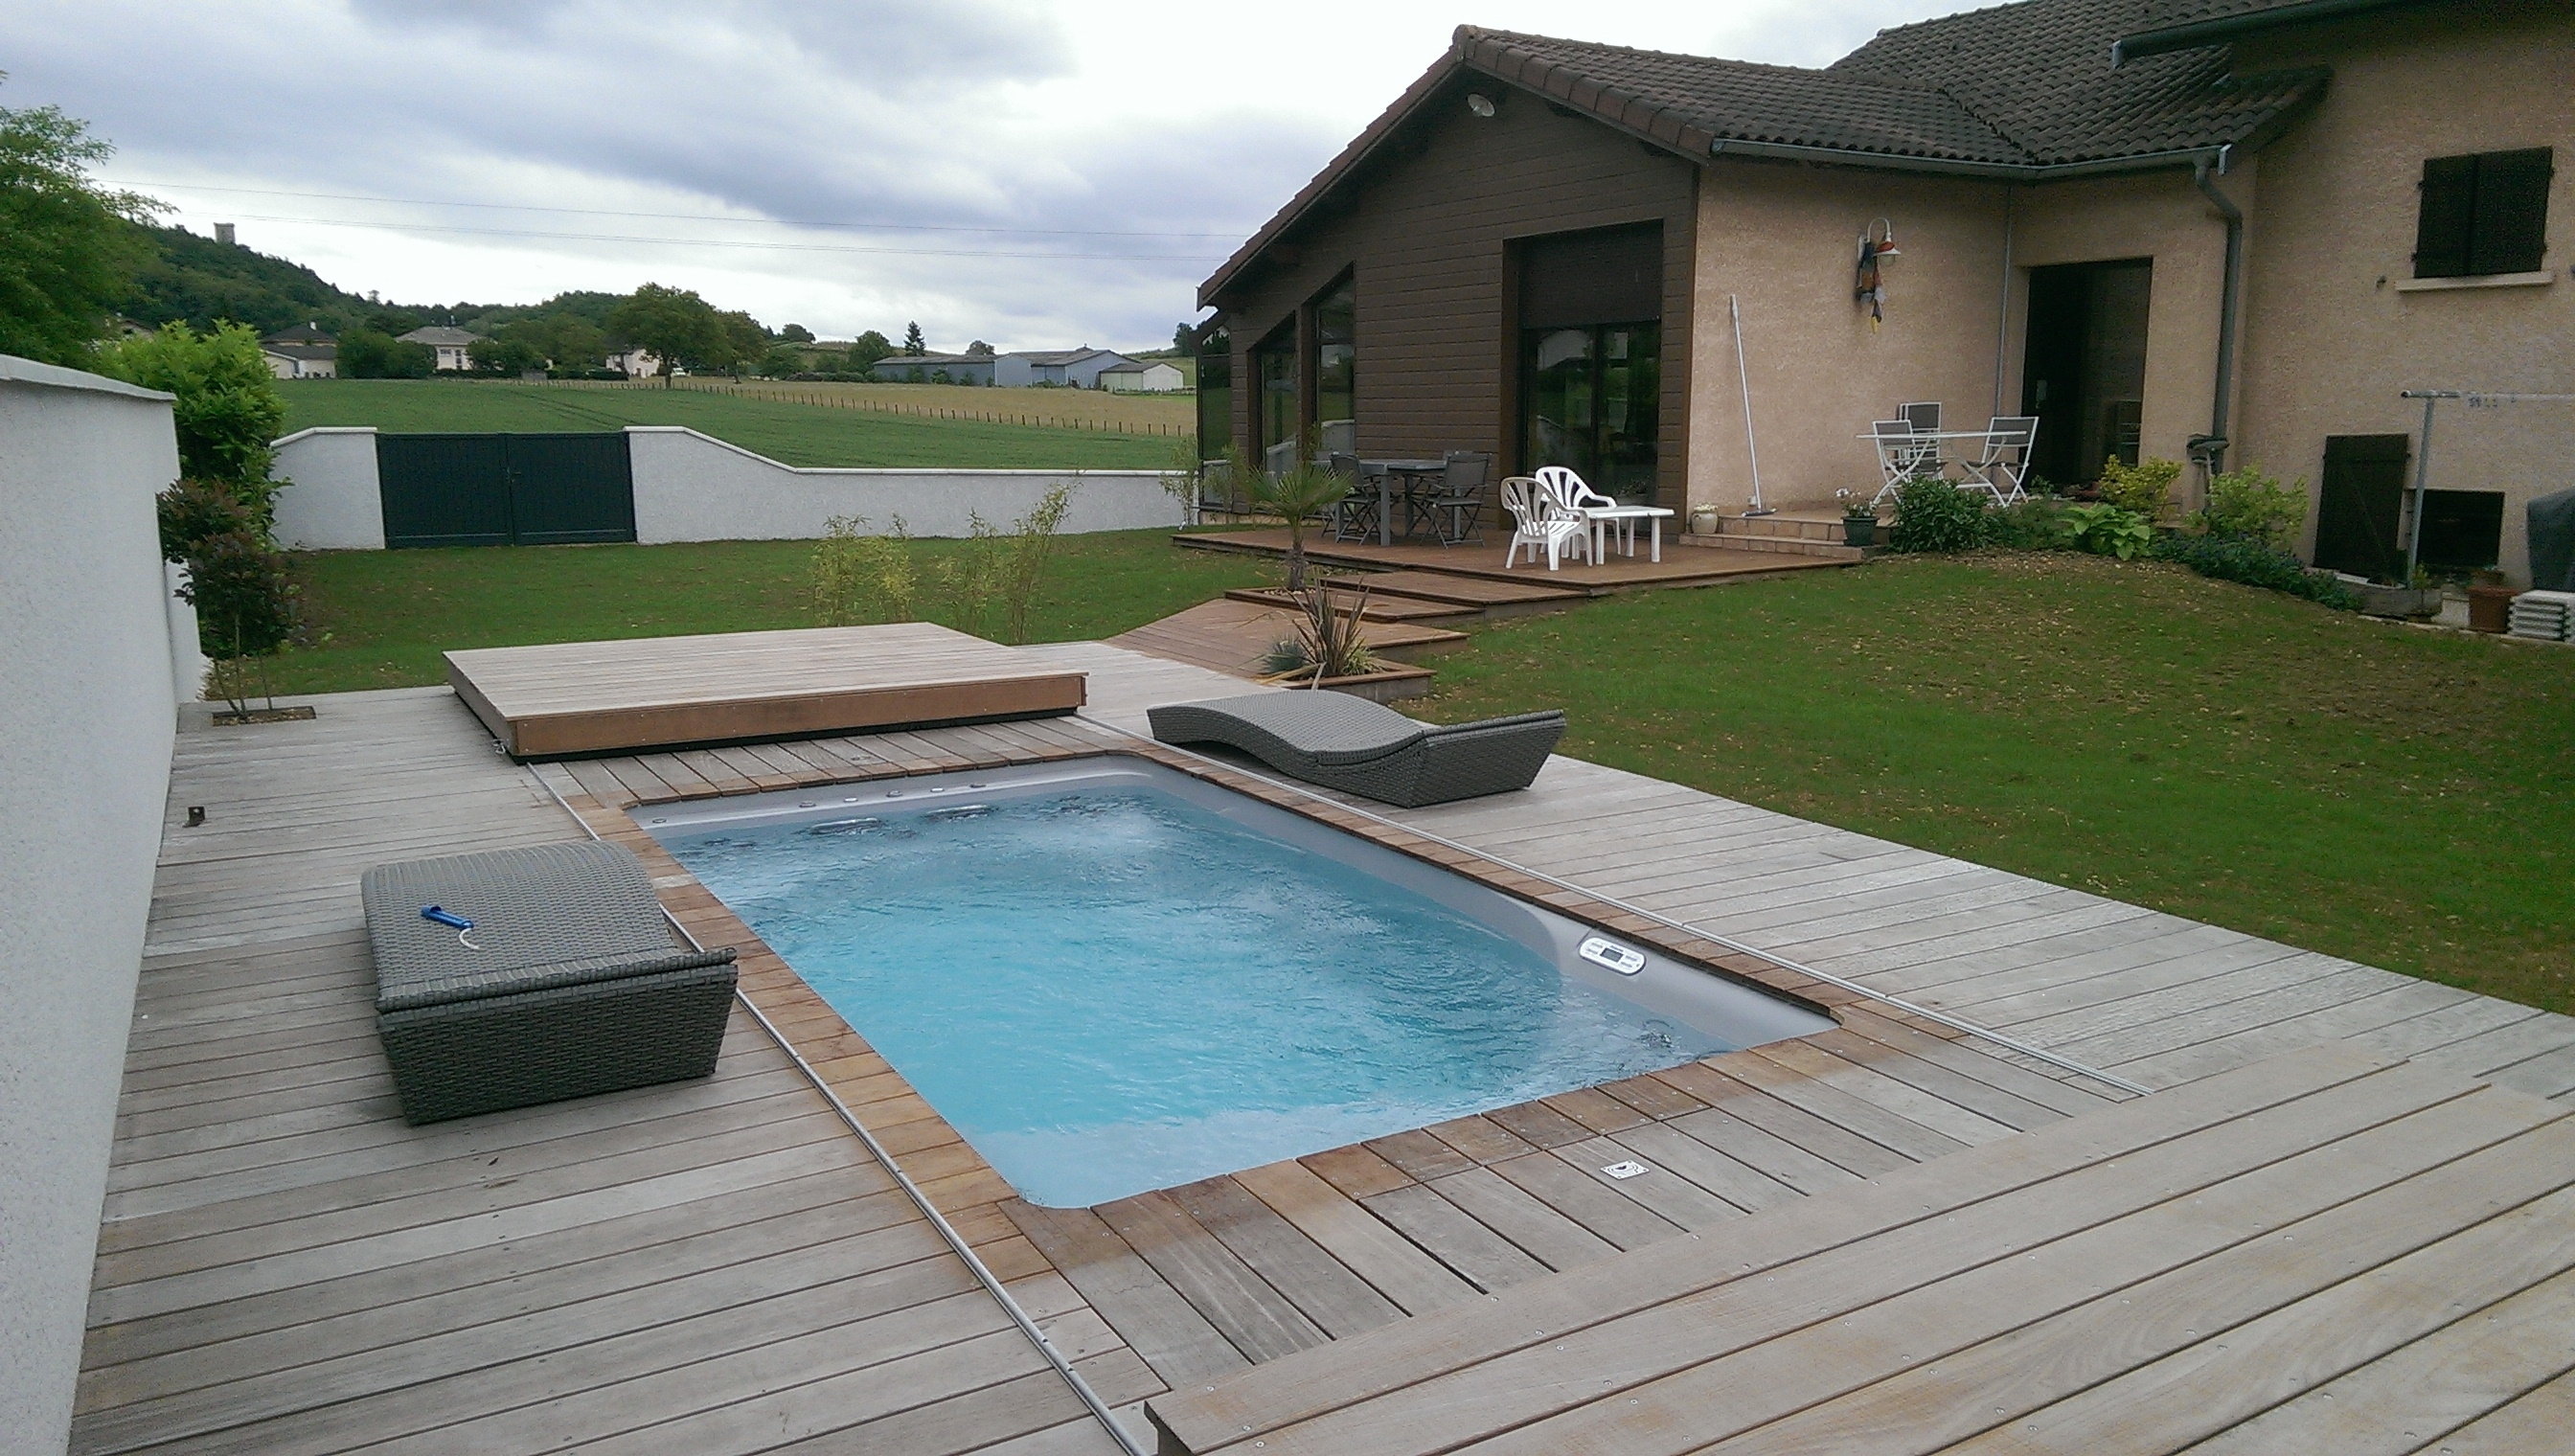 Piscine spa baln o nage contre courant pretty pool for Piscine hors sol avec nage contre courant